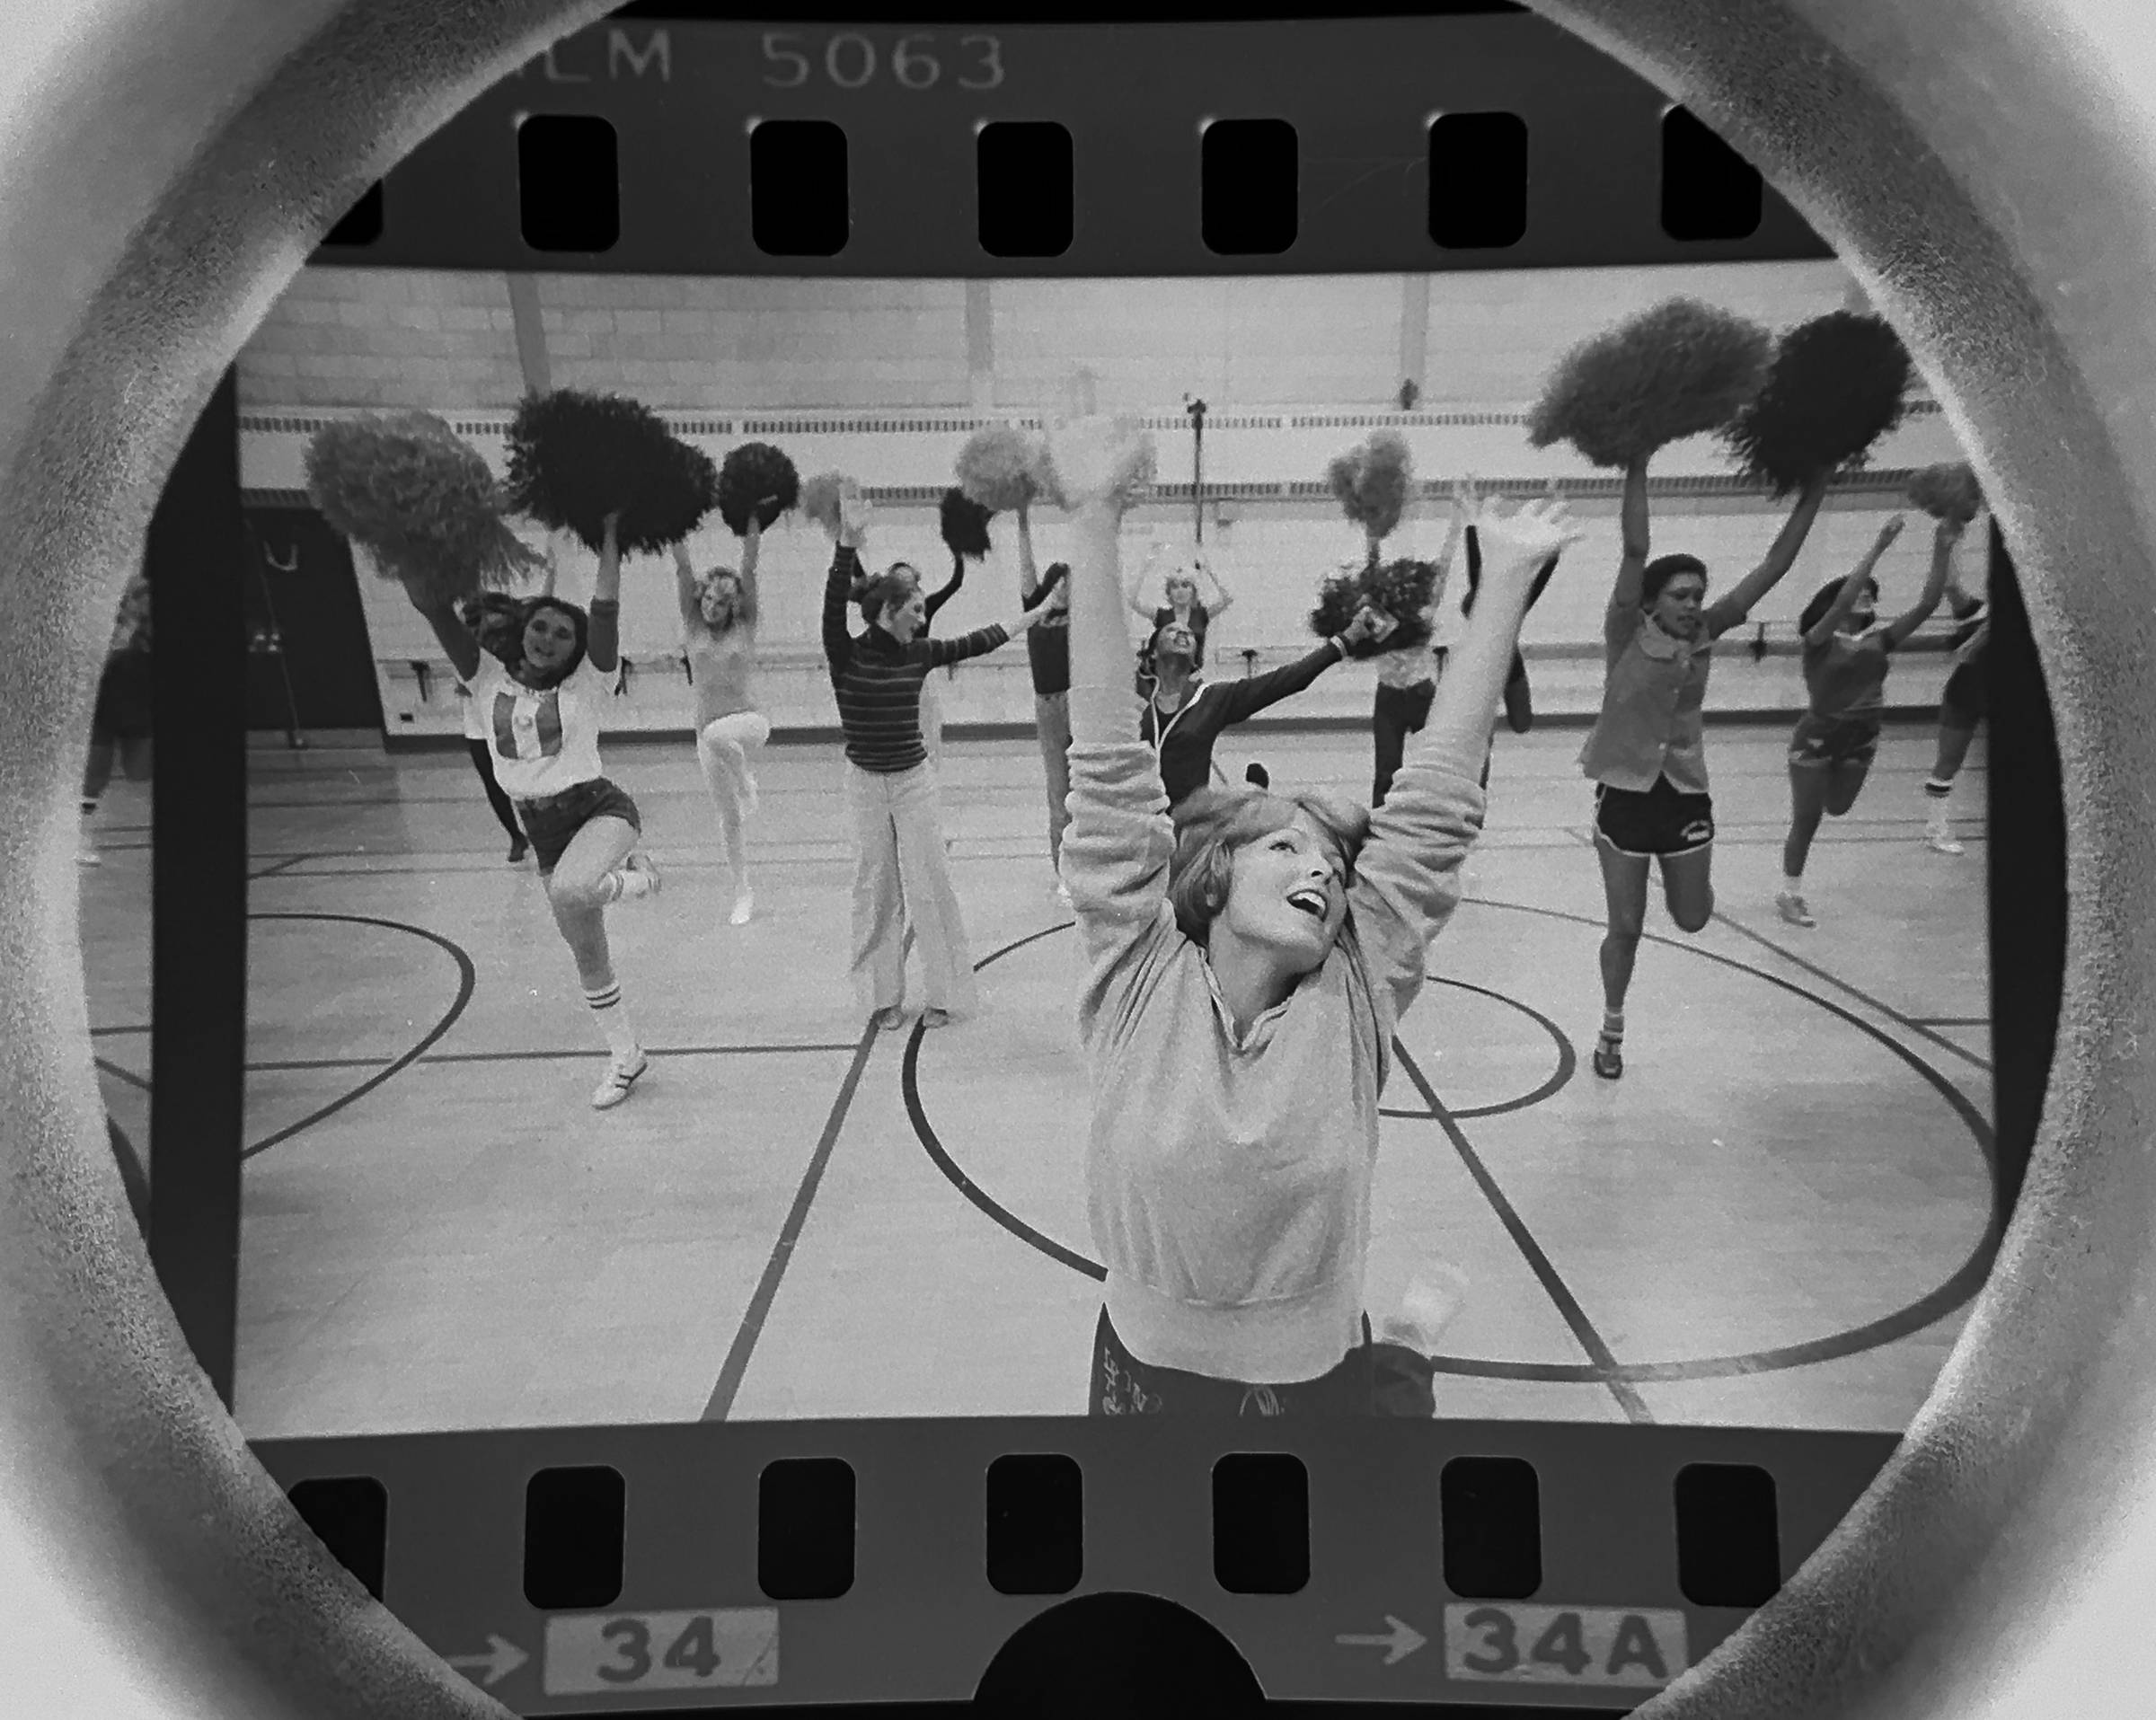 The Daily Herald Archive, Assignment # 45,105, Barry Jarvinen photo: Members of the Chicago Bears Honey Bears cheerleading squad practice for an upcoming Bears game in October of 1977. The Honey Bears final performance was at Super Bowl XX, January 26, 1986.